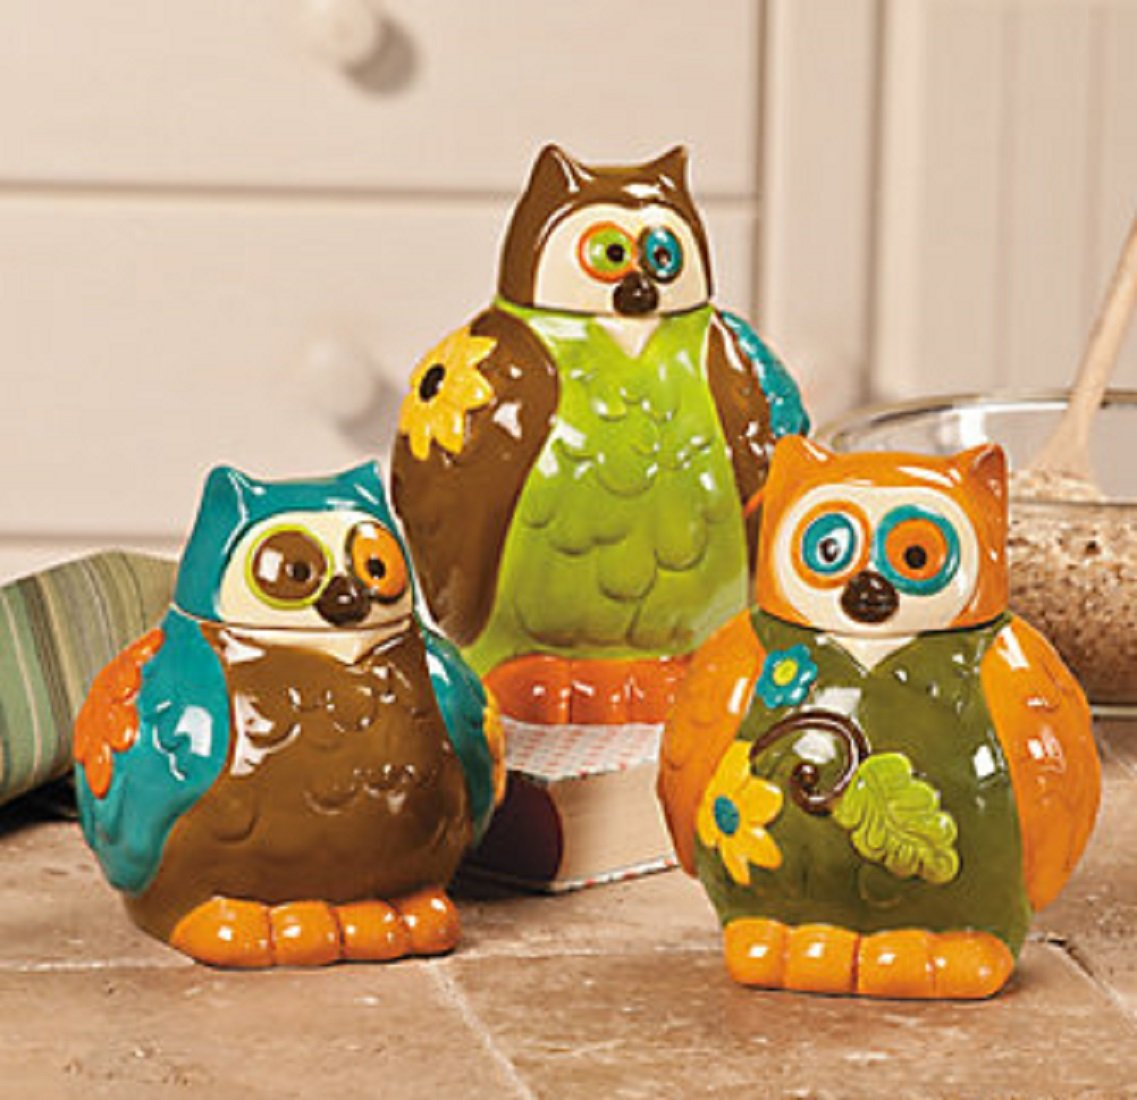 amazon com owl canisters jars kitchen decor set of 3 home amazon com owl canisters jars kitchen decor set of 3 home kitchen